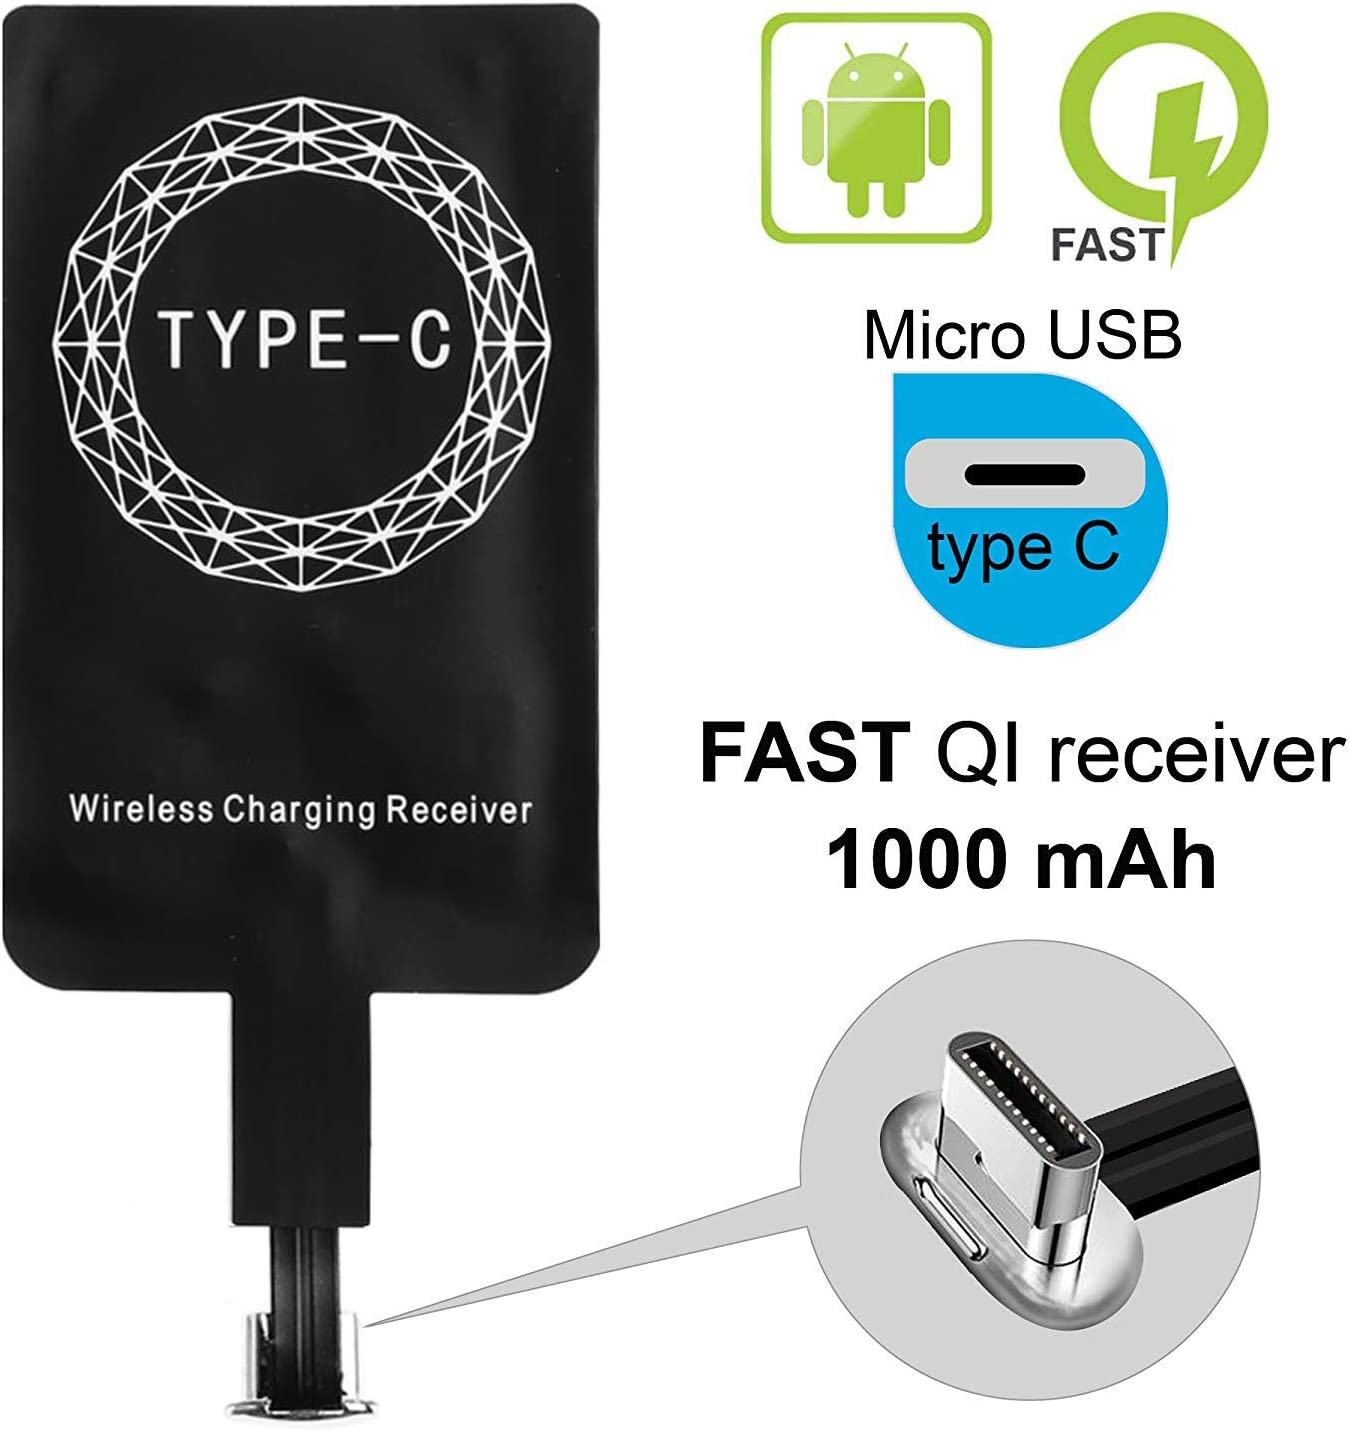 Type C Qi Wireless Charging Receiver, Magic Tag USB C Wireless Charger Adapter Patch Module Chip Ultra Thin for Google Pixel 2XL-XL-LG V20- LG G5- Motorola G6- G6 Plus- HTC 10- Samsung Galaxy A5-A7